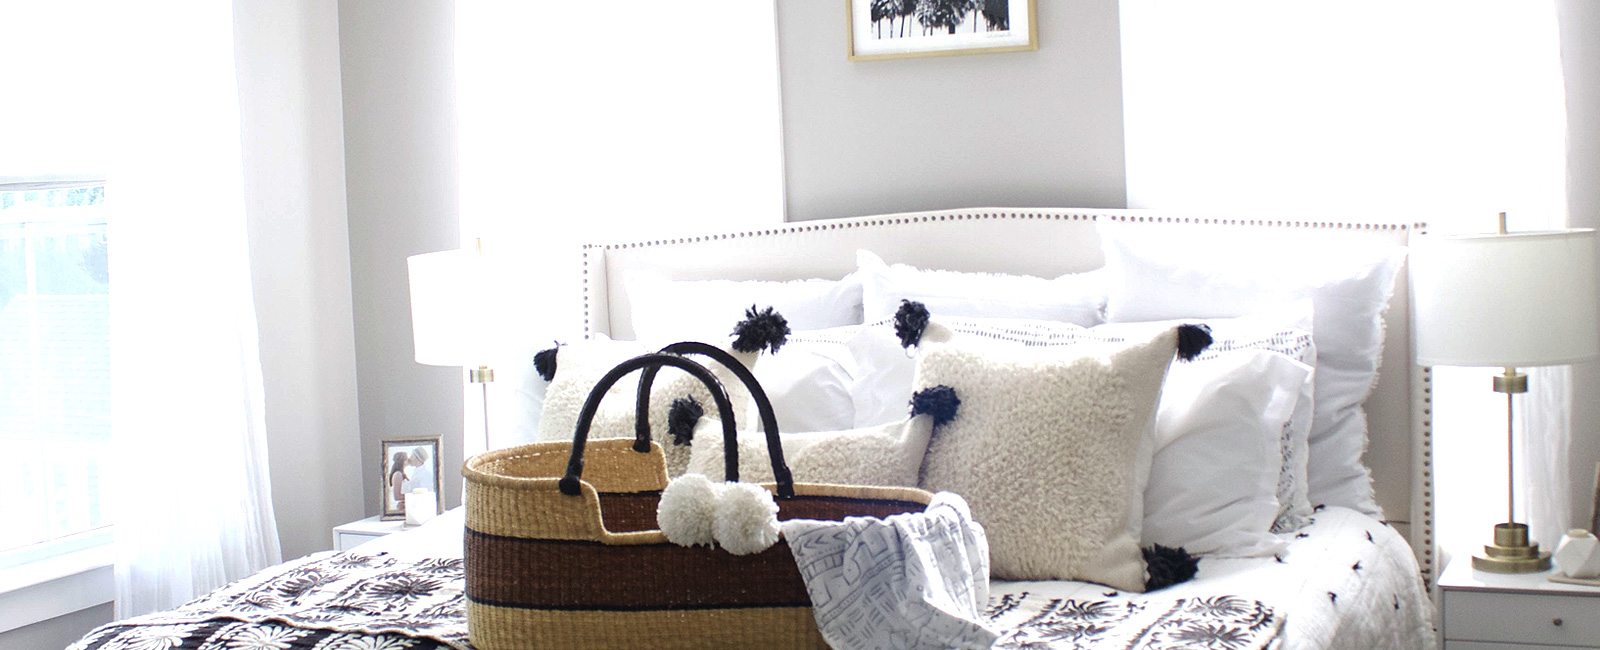 5 STEPS TO PREPARE YOUR HOME FOR BABY #3